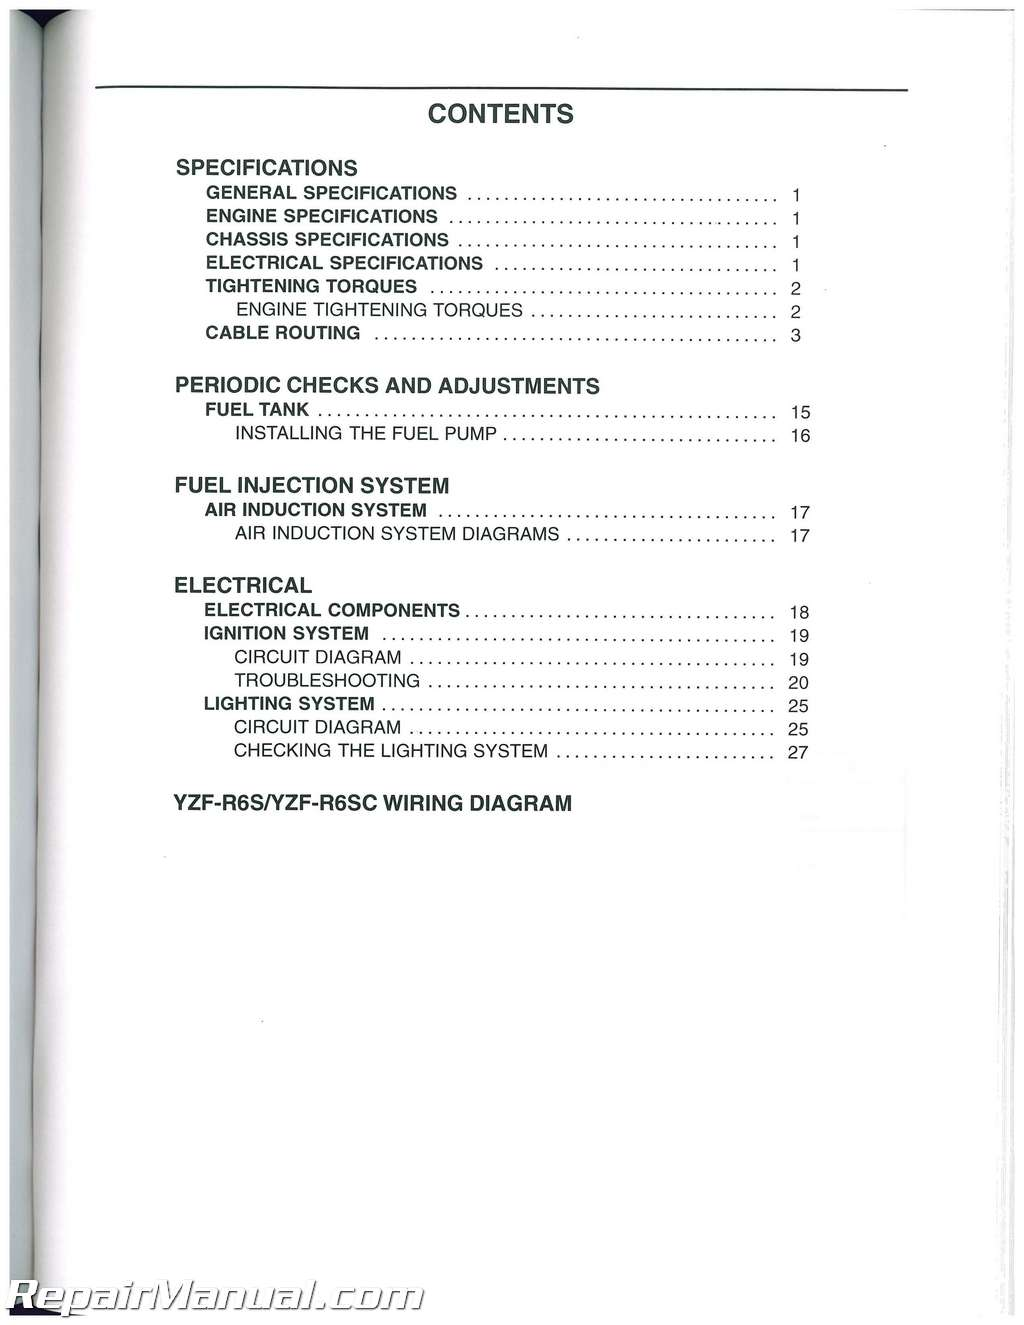 2003 2005 Yamaha Yzf R6 And 2006 2009 R6s Service Manual Wiring Diagram